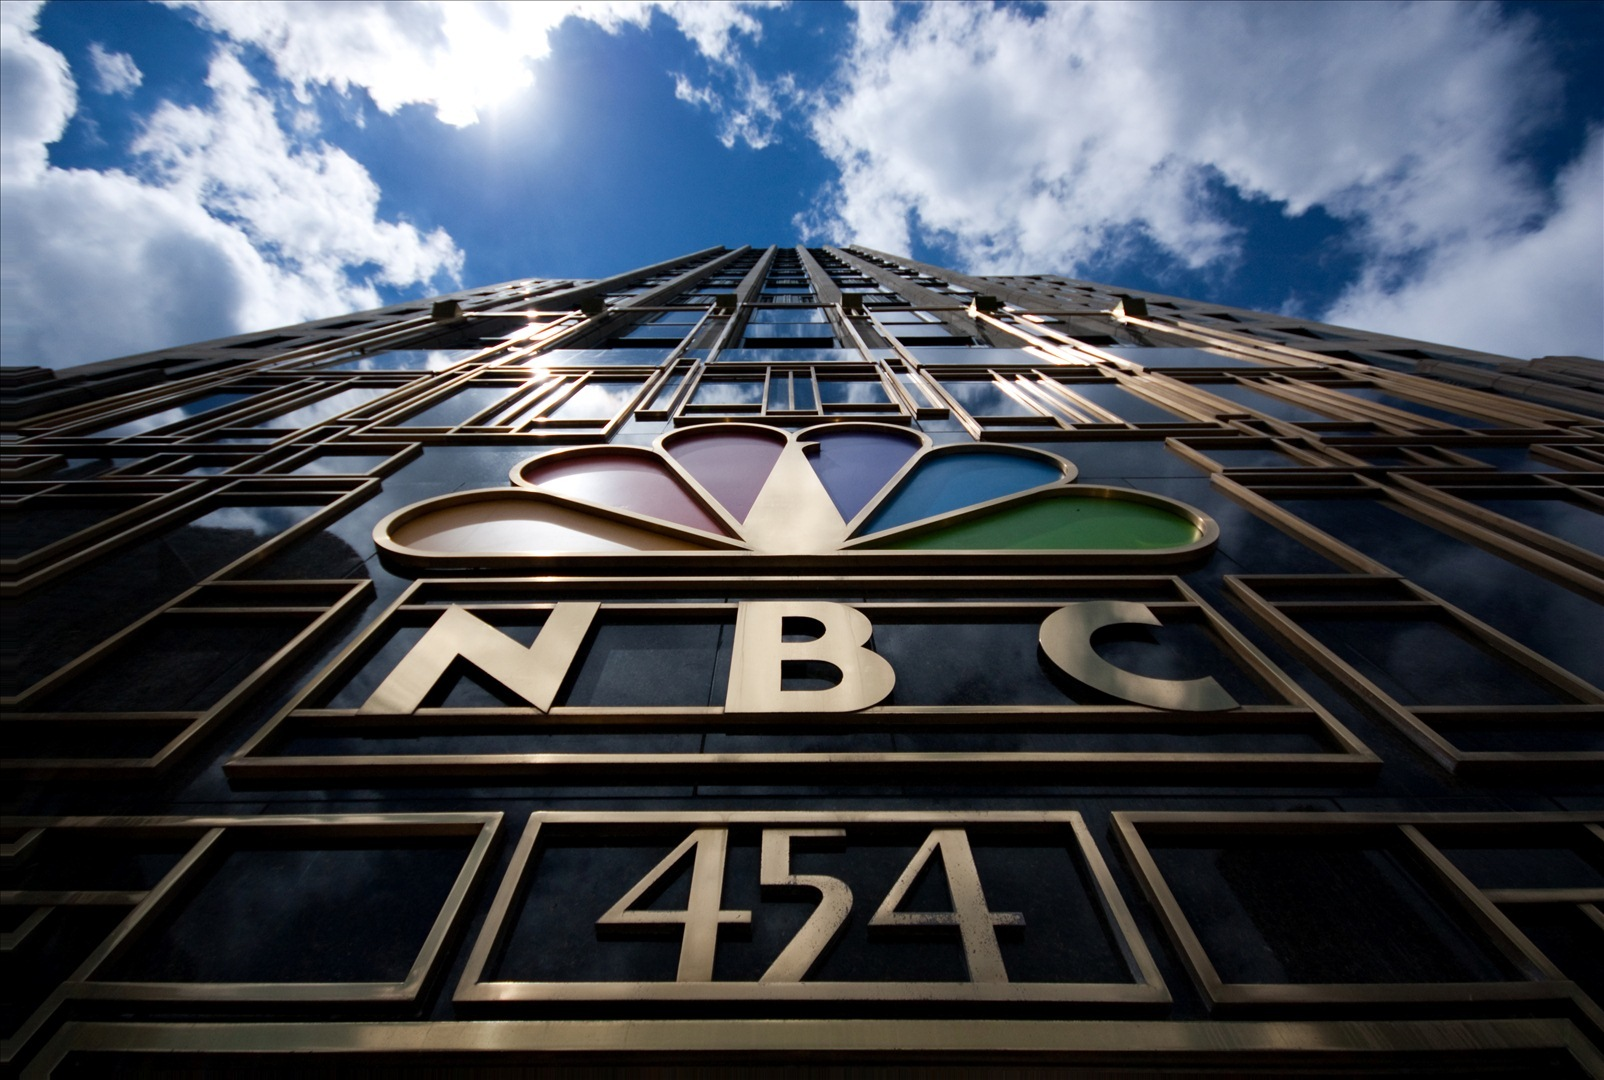 NBC_building_in_Chicago[1]